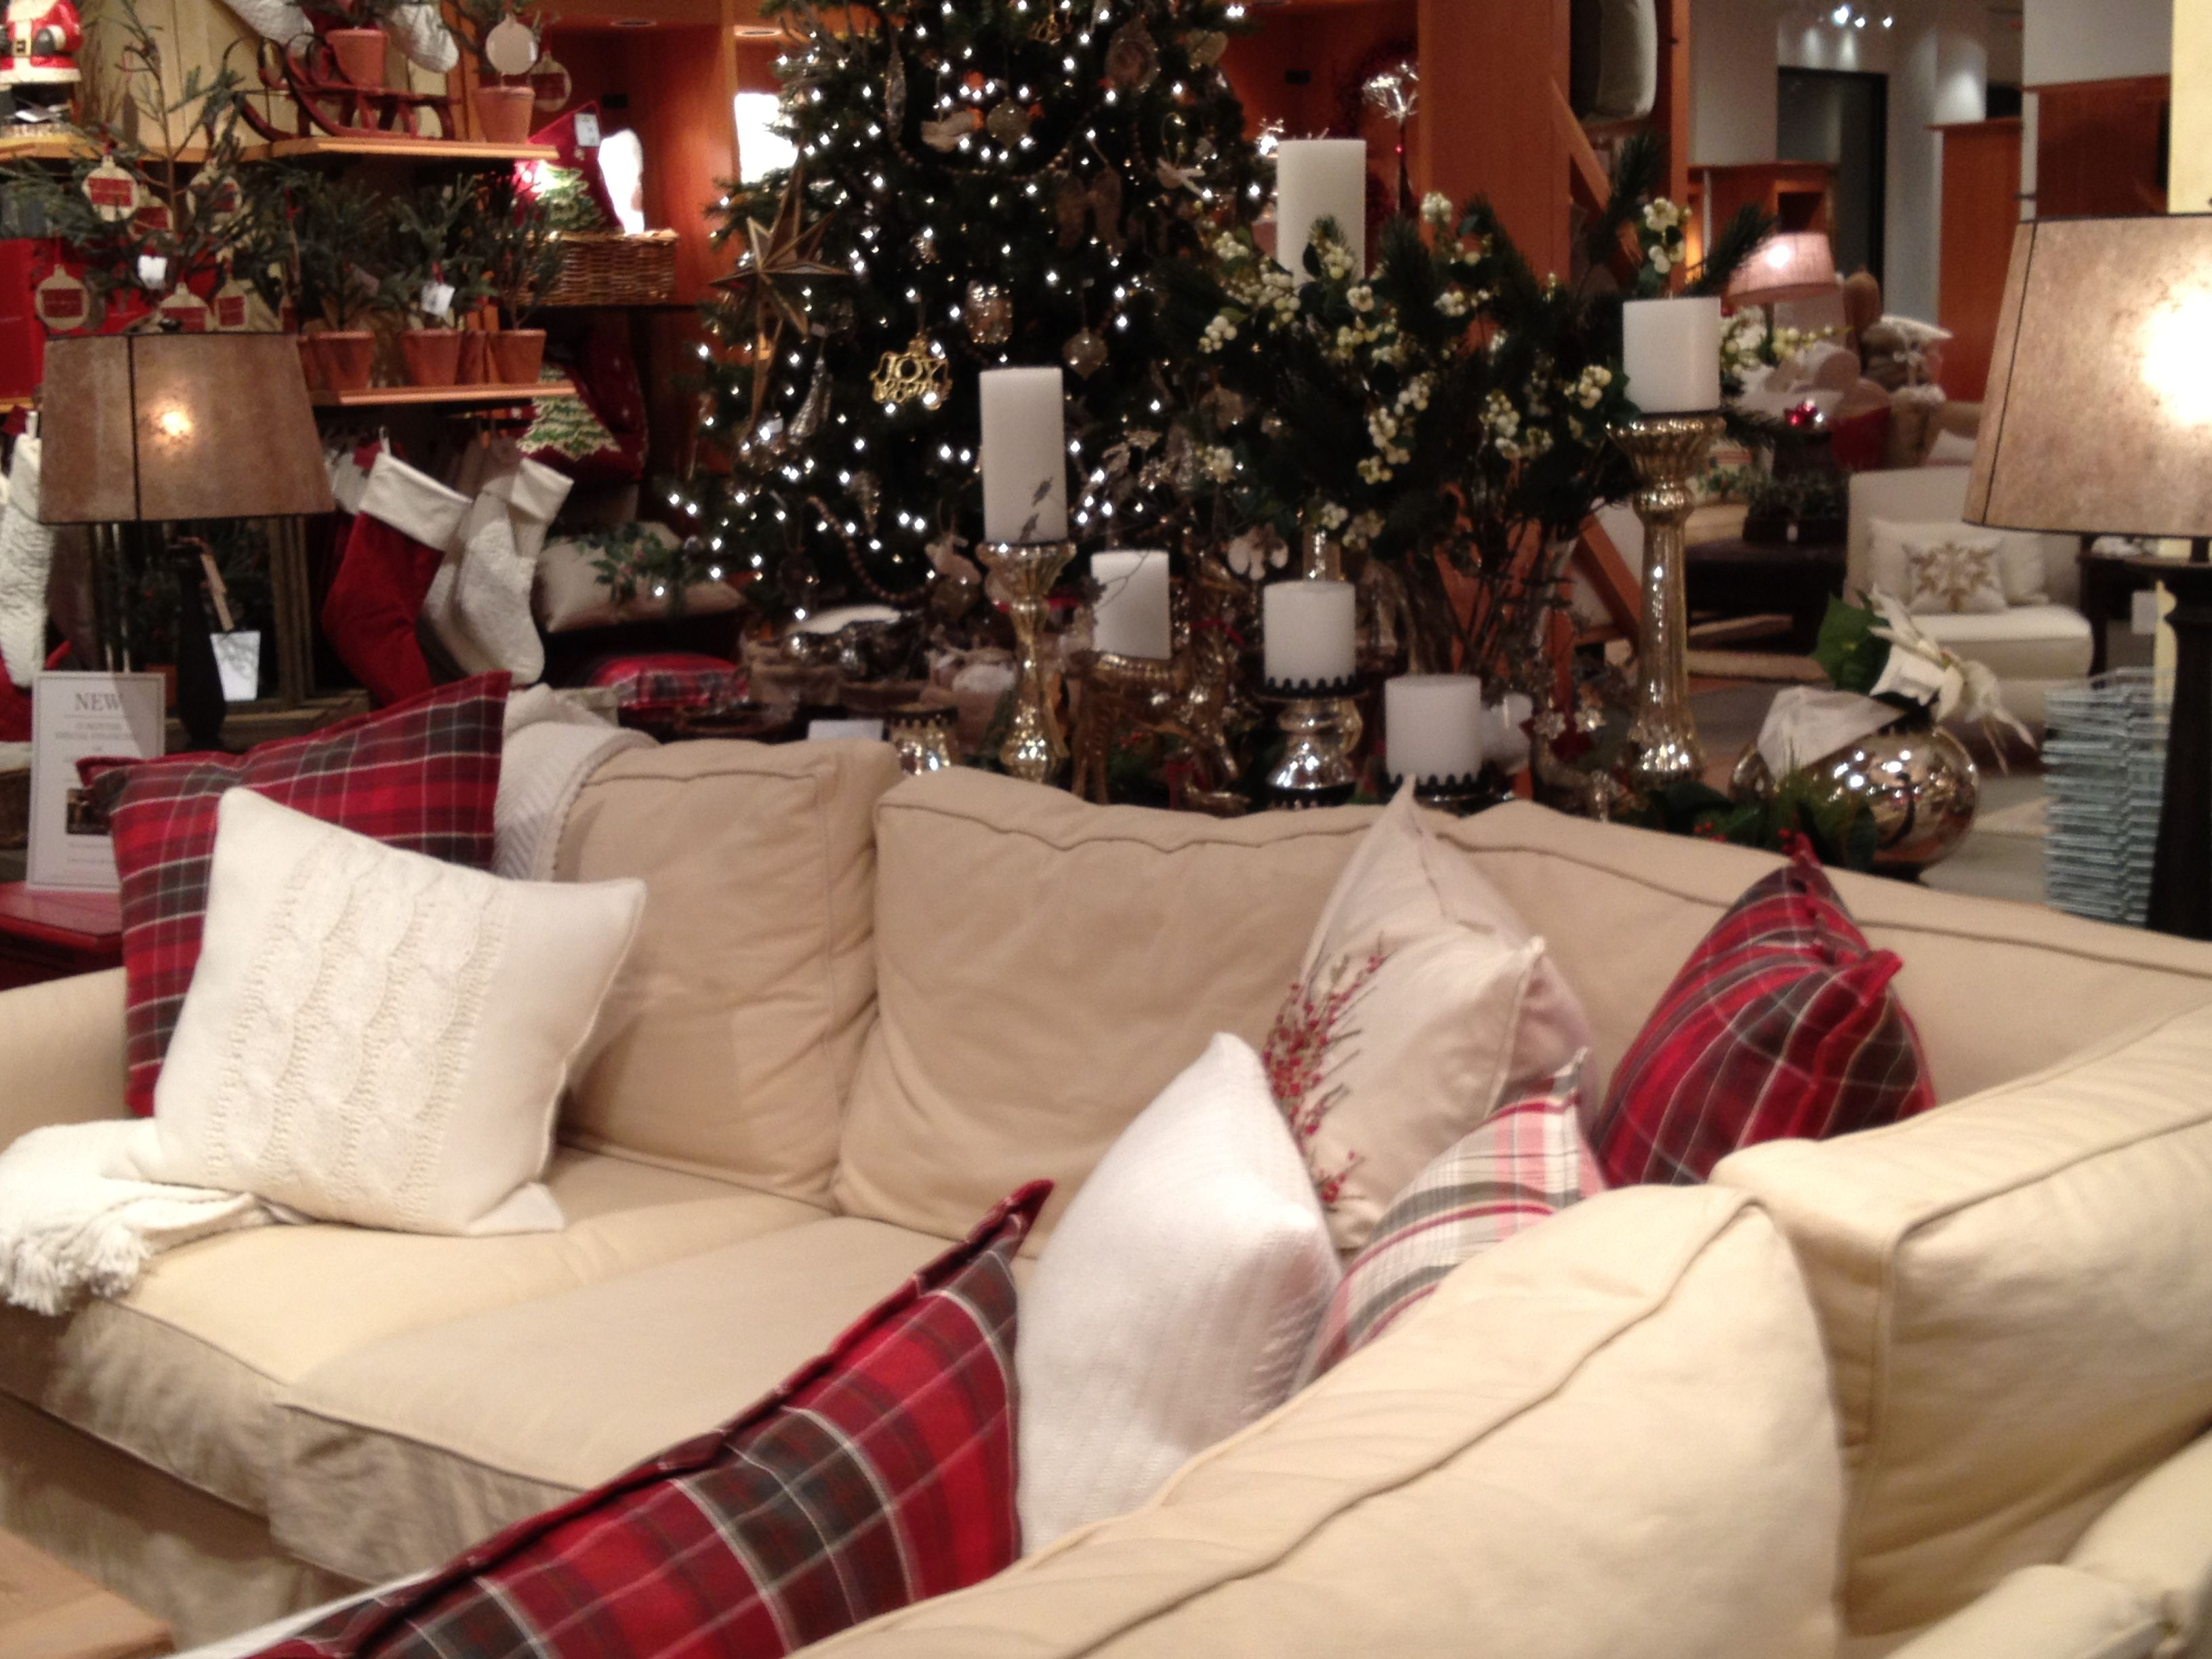 Such a cozy holiday-themed living room at Pottery Barn.